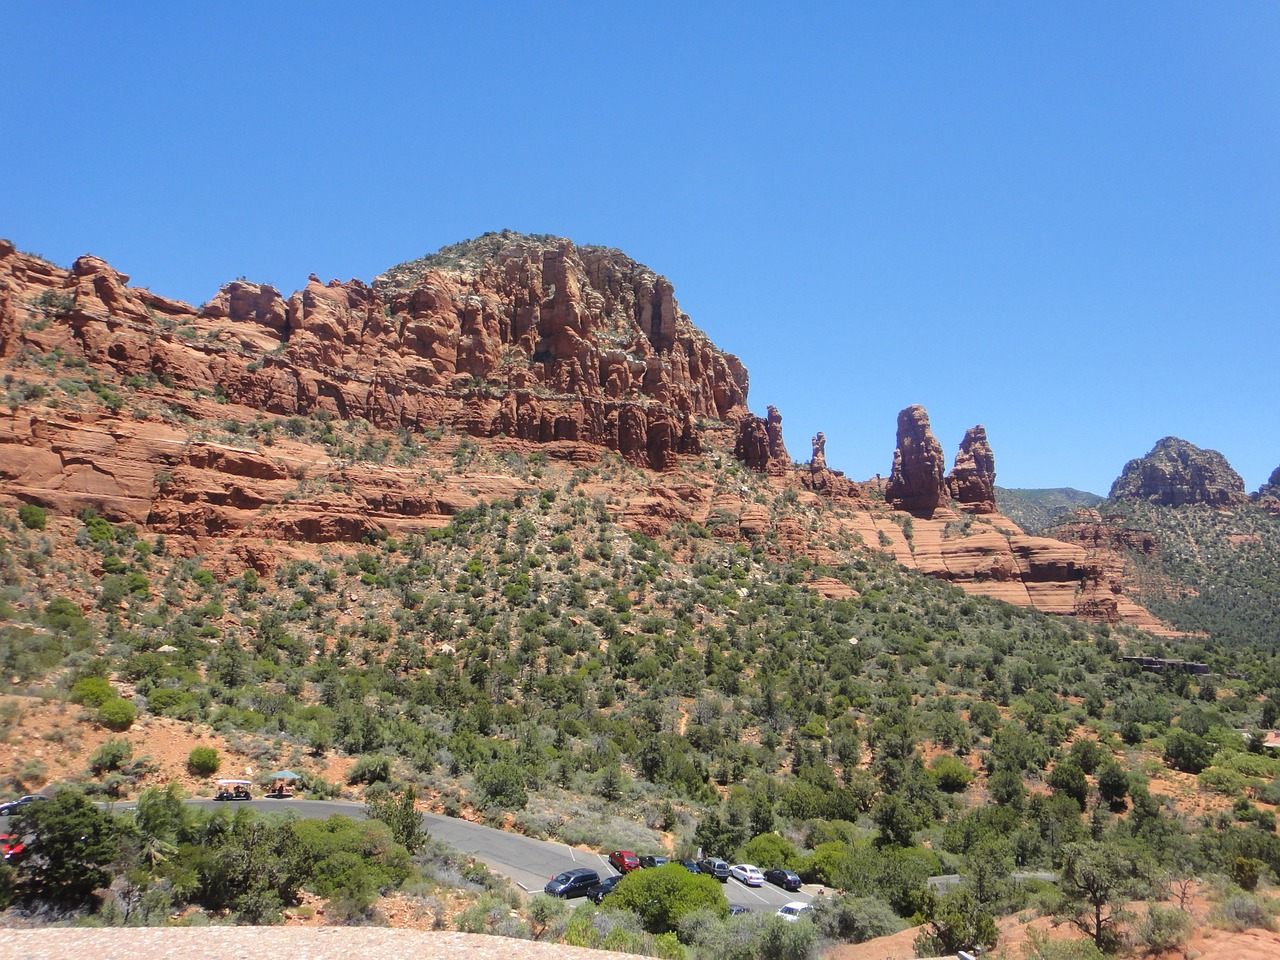 Arizona,red rock,desert,landscape,wilderness - free photo